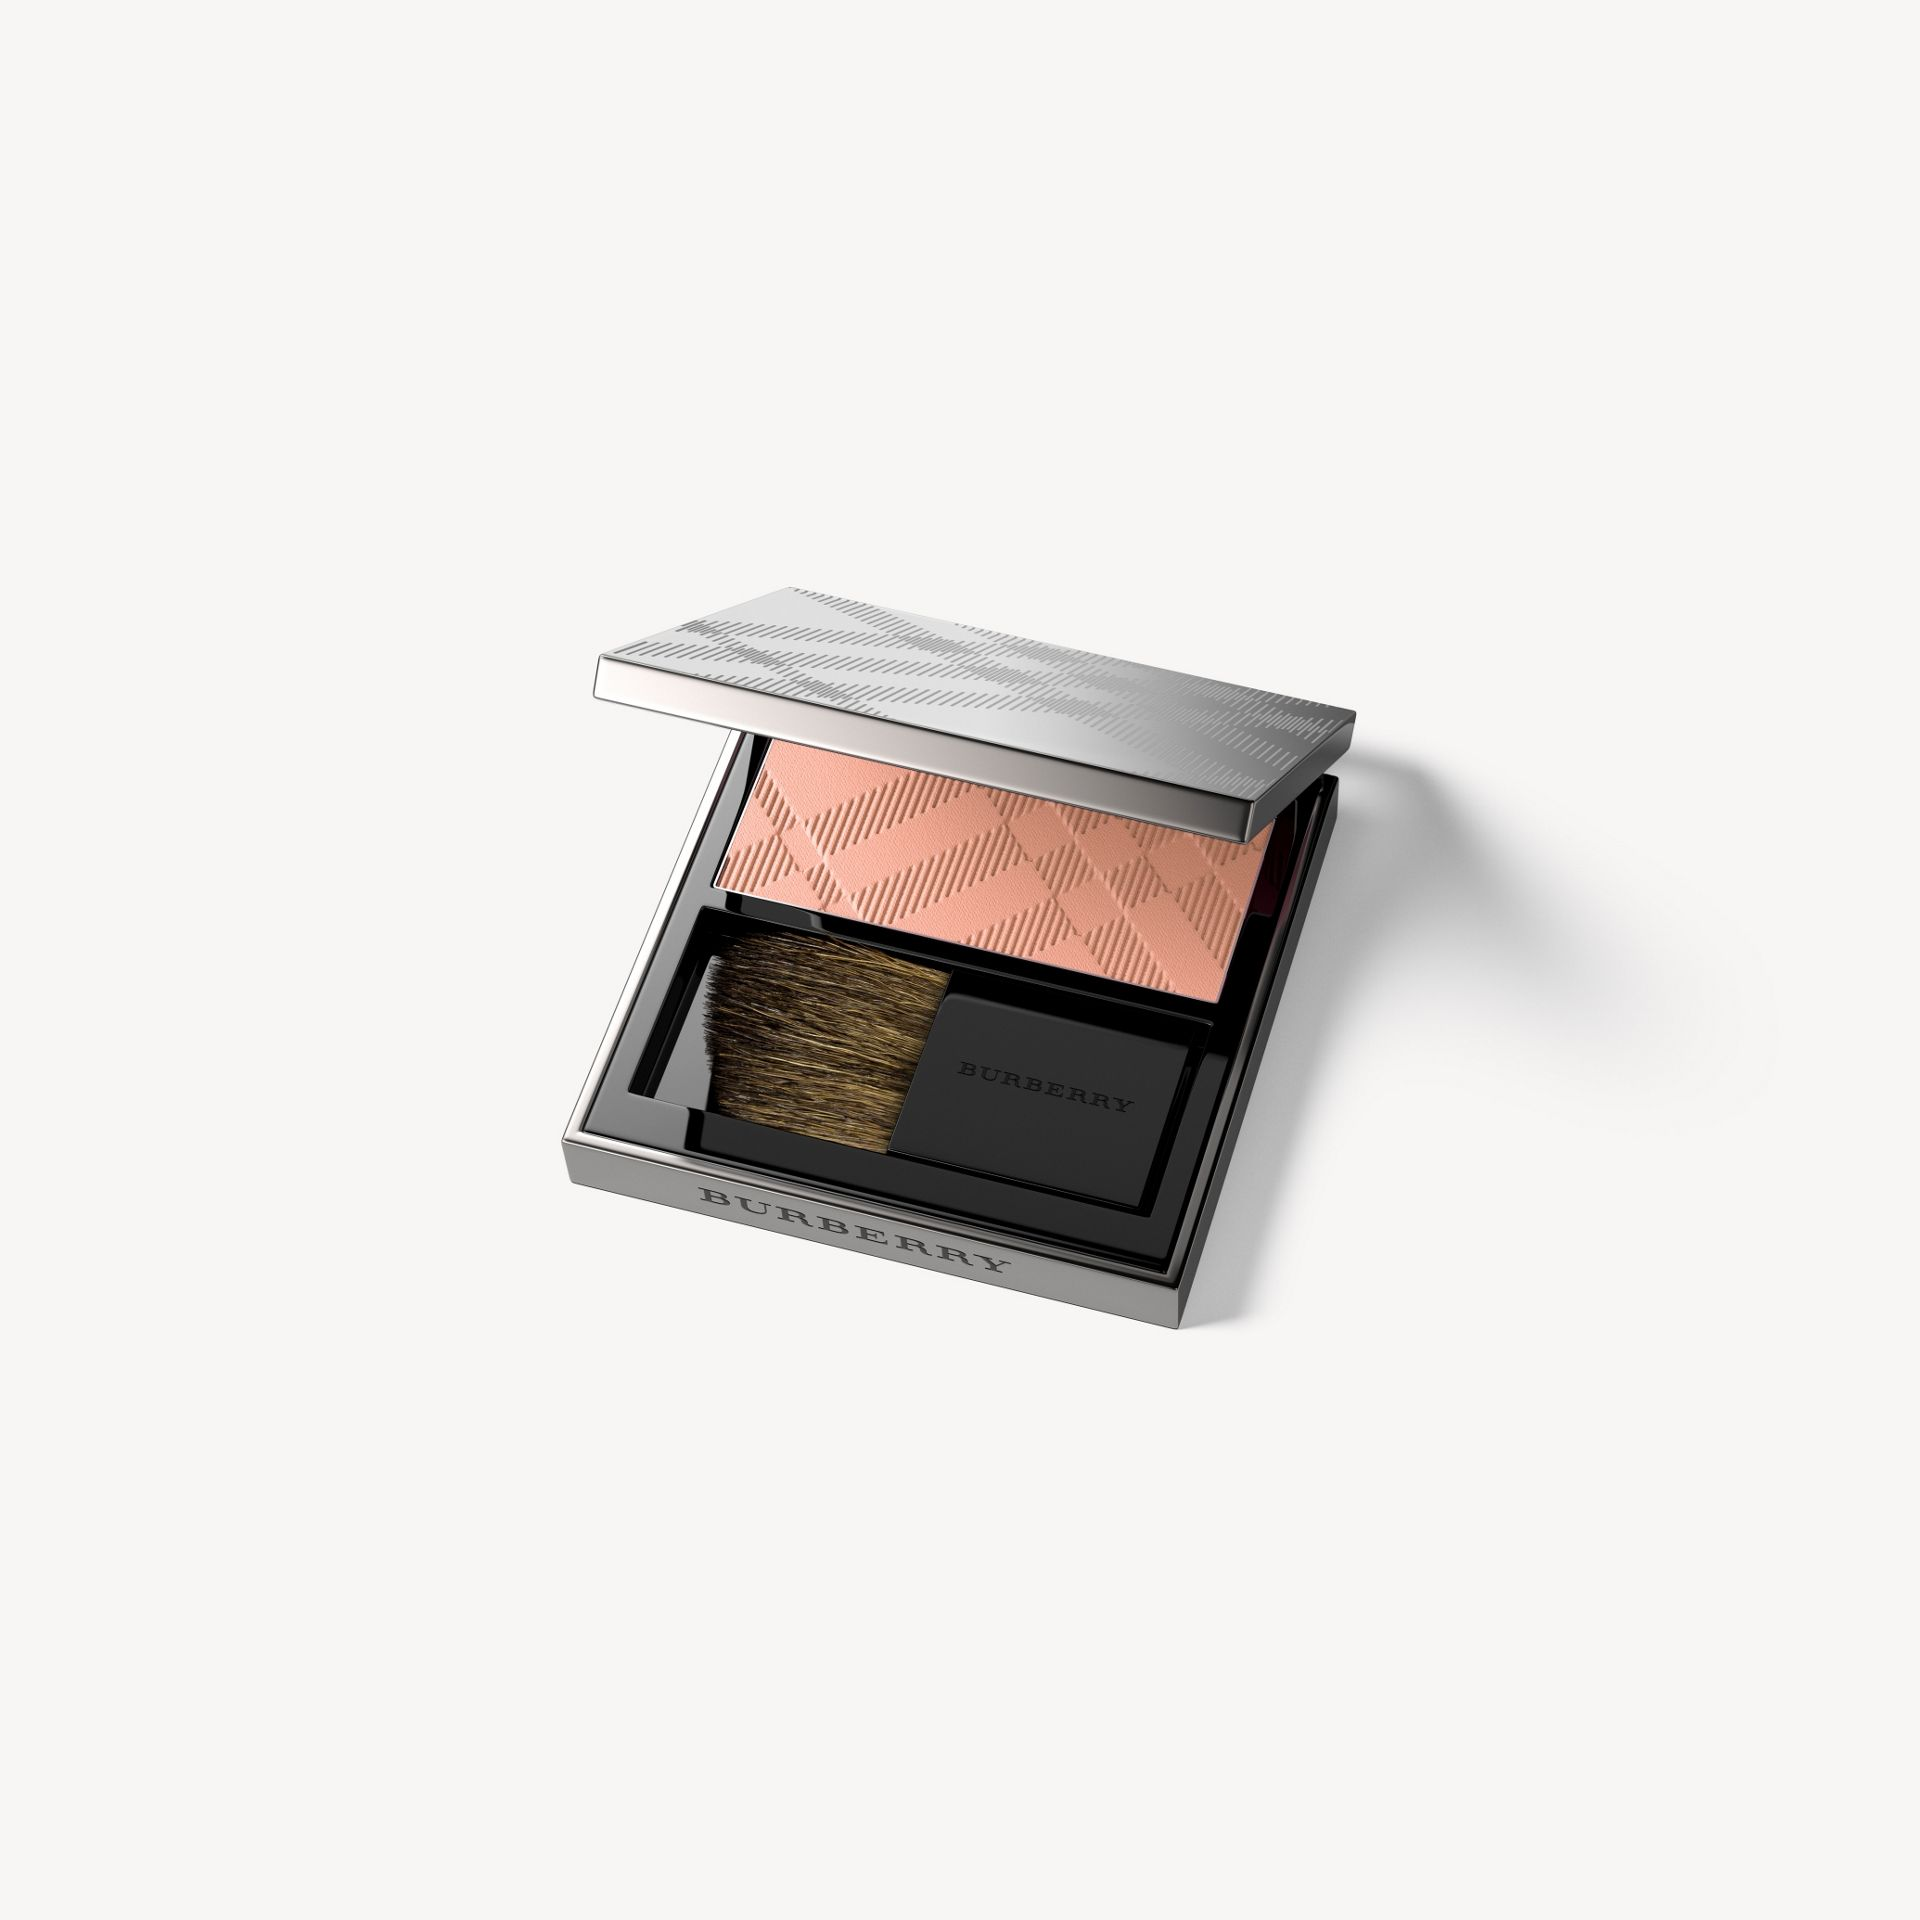 Румяна Light Glow, Tangerine Blush № 06 (№) - Для женщин | Burberry - изображение 1